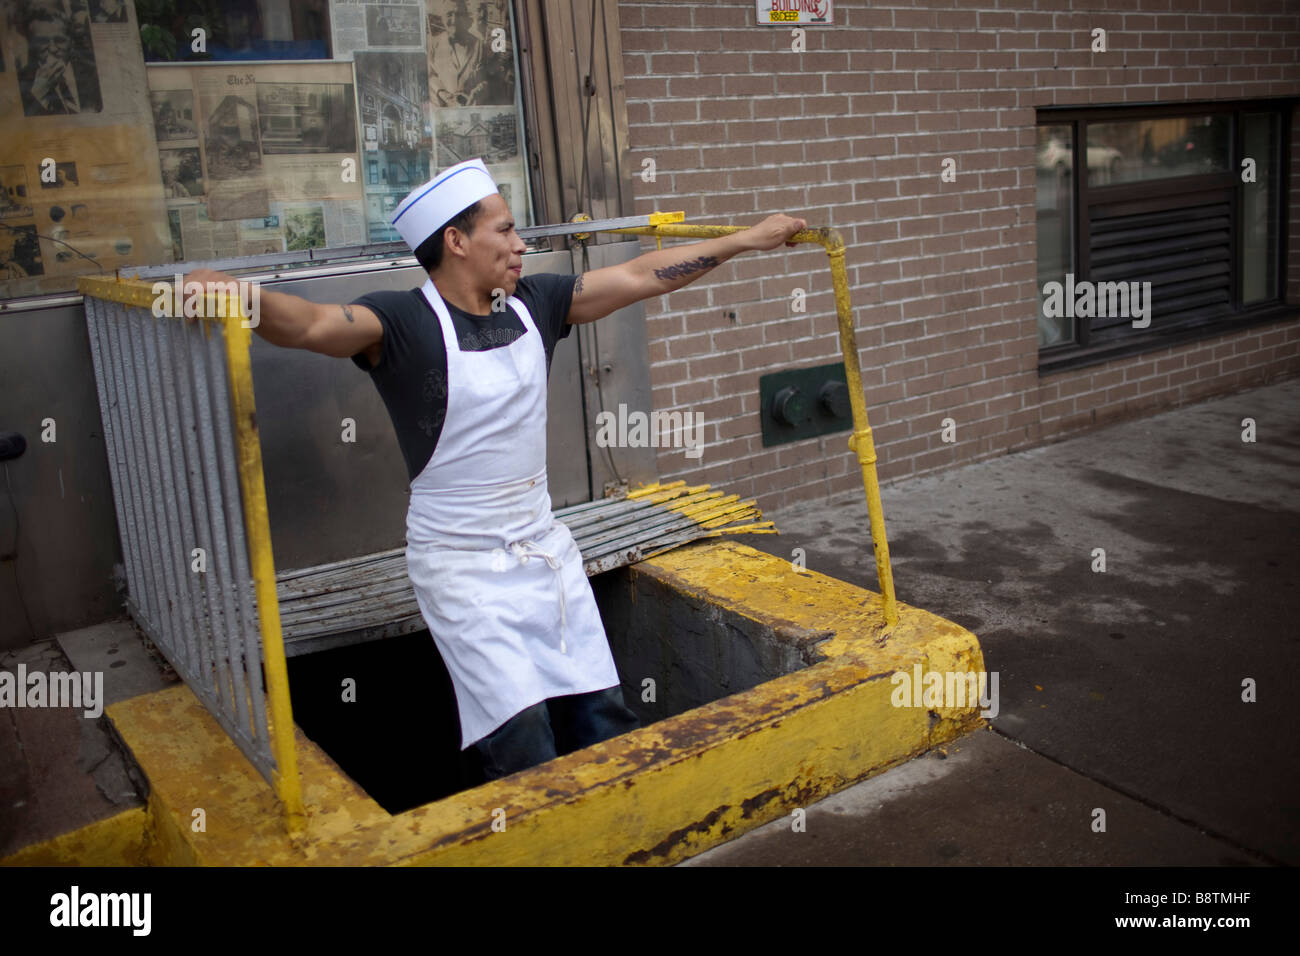 Busboy takes a breather - Stock Image